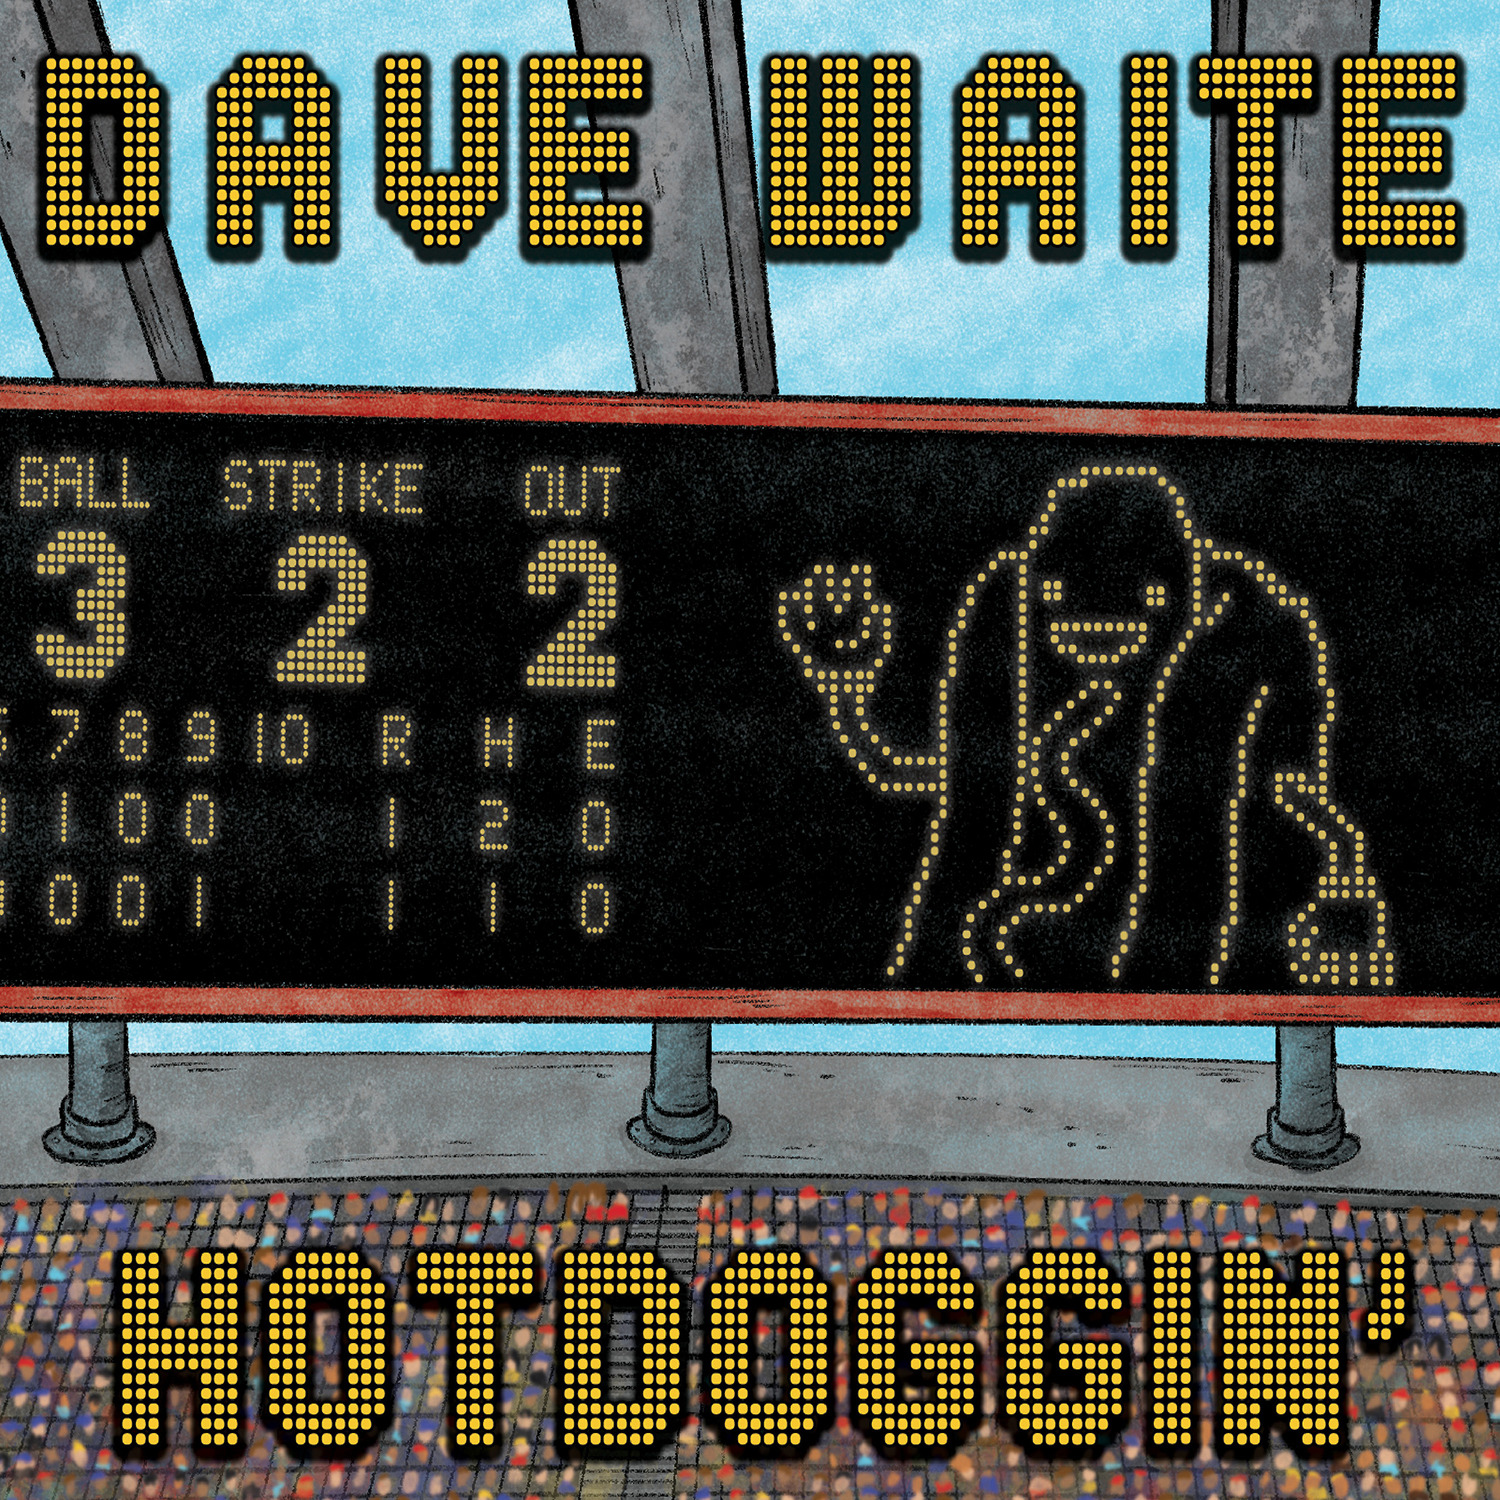 COMEDY NEWS: DAVE WAITE'S HOTTDOGGIN' OUT NEXT WEEK FOR YOUR SUMMER BBQ PLEASURE!